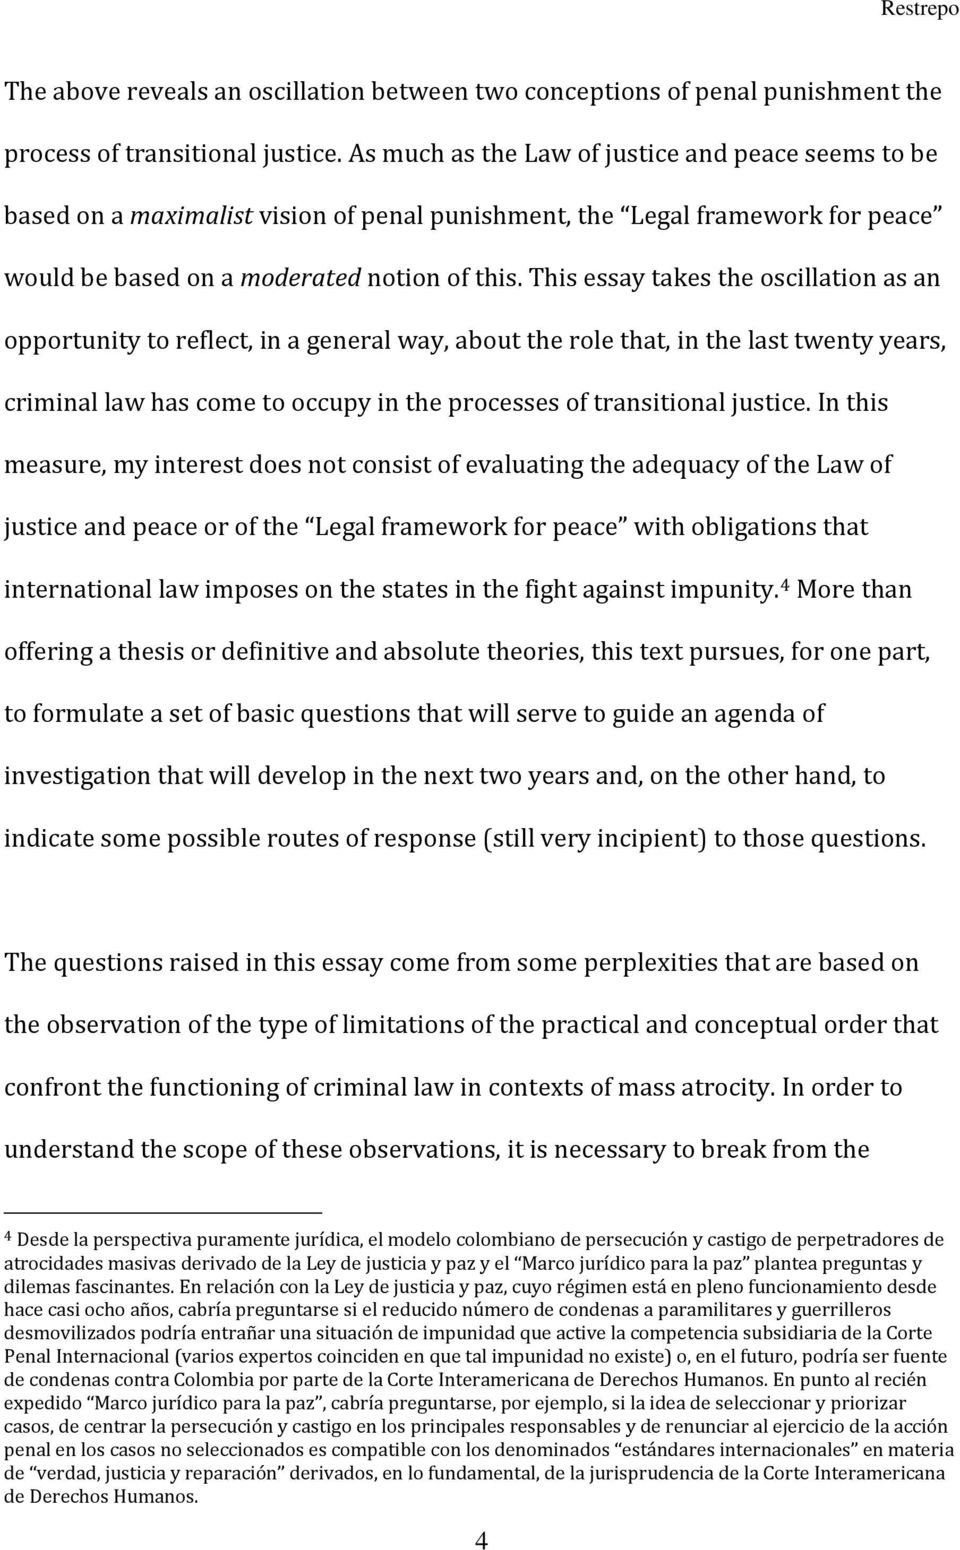 This essay takes the oscillation as an opportunity to reflect, in a general way, about the role that, in the last twenty years, criminal law has come to occupy in the processes of transitional